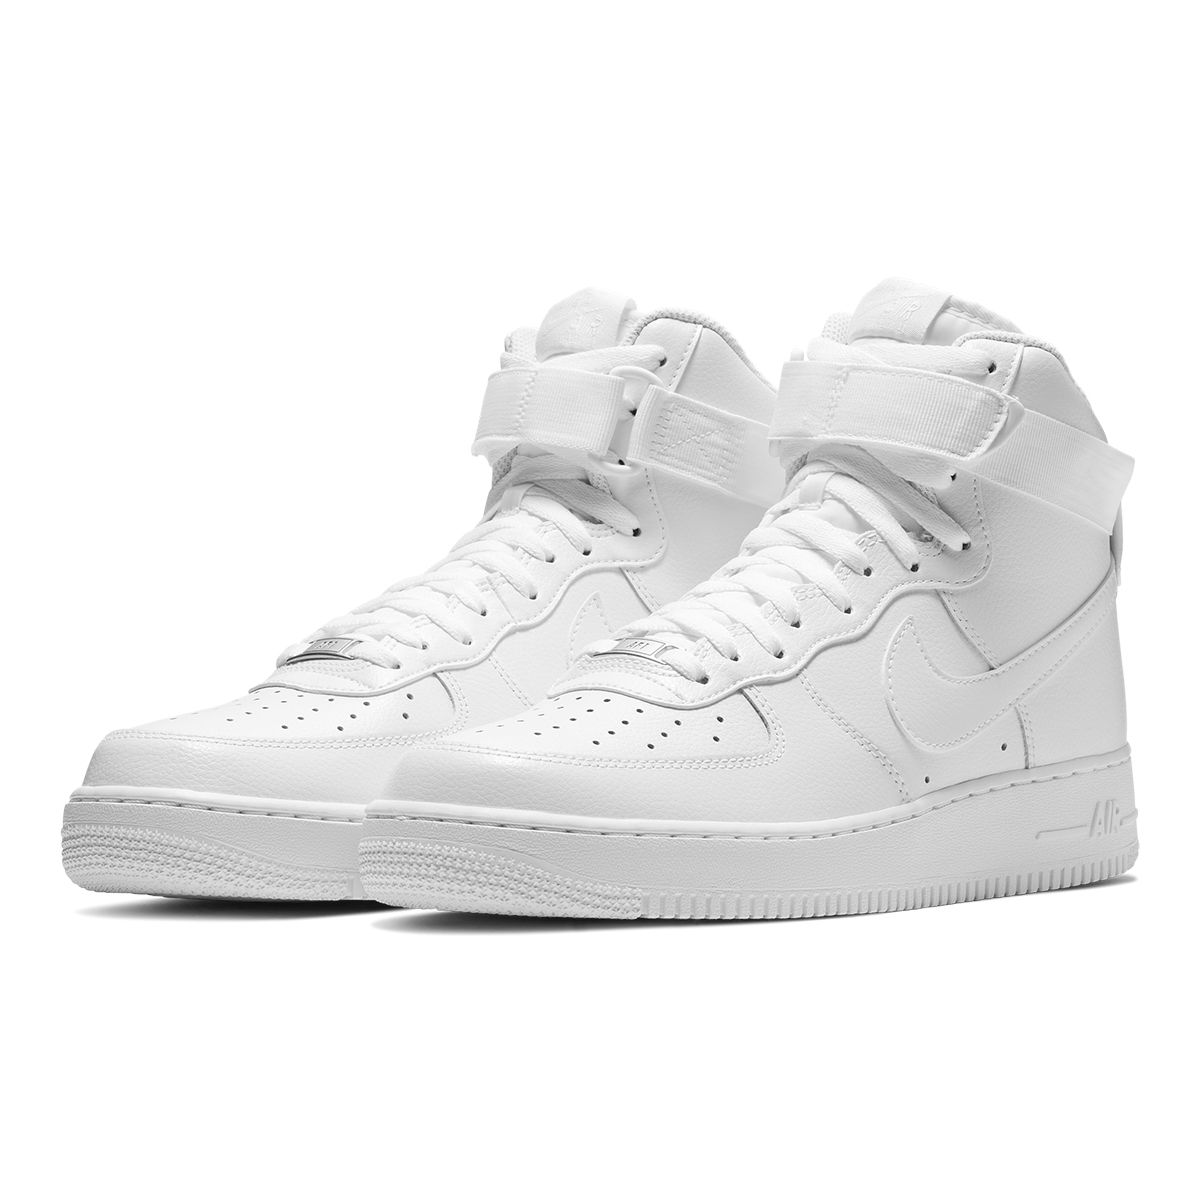 NIKE AIR FORCE 1 HIGH '07 / 111:WHITE-WHITE